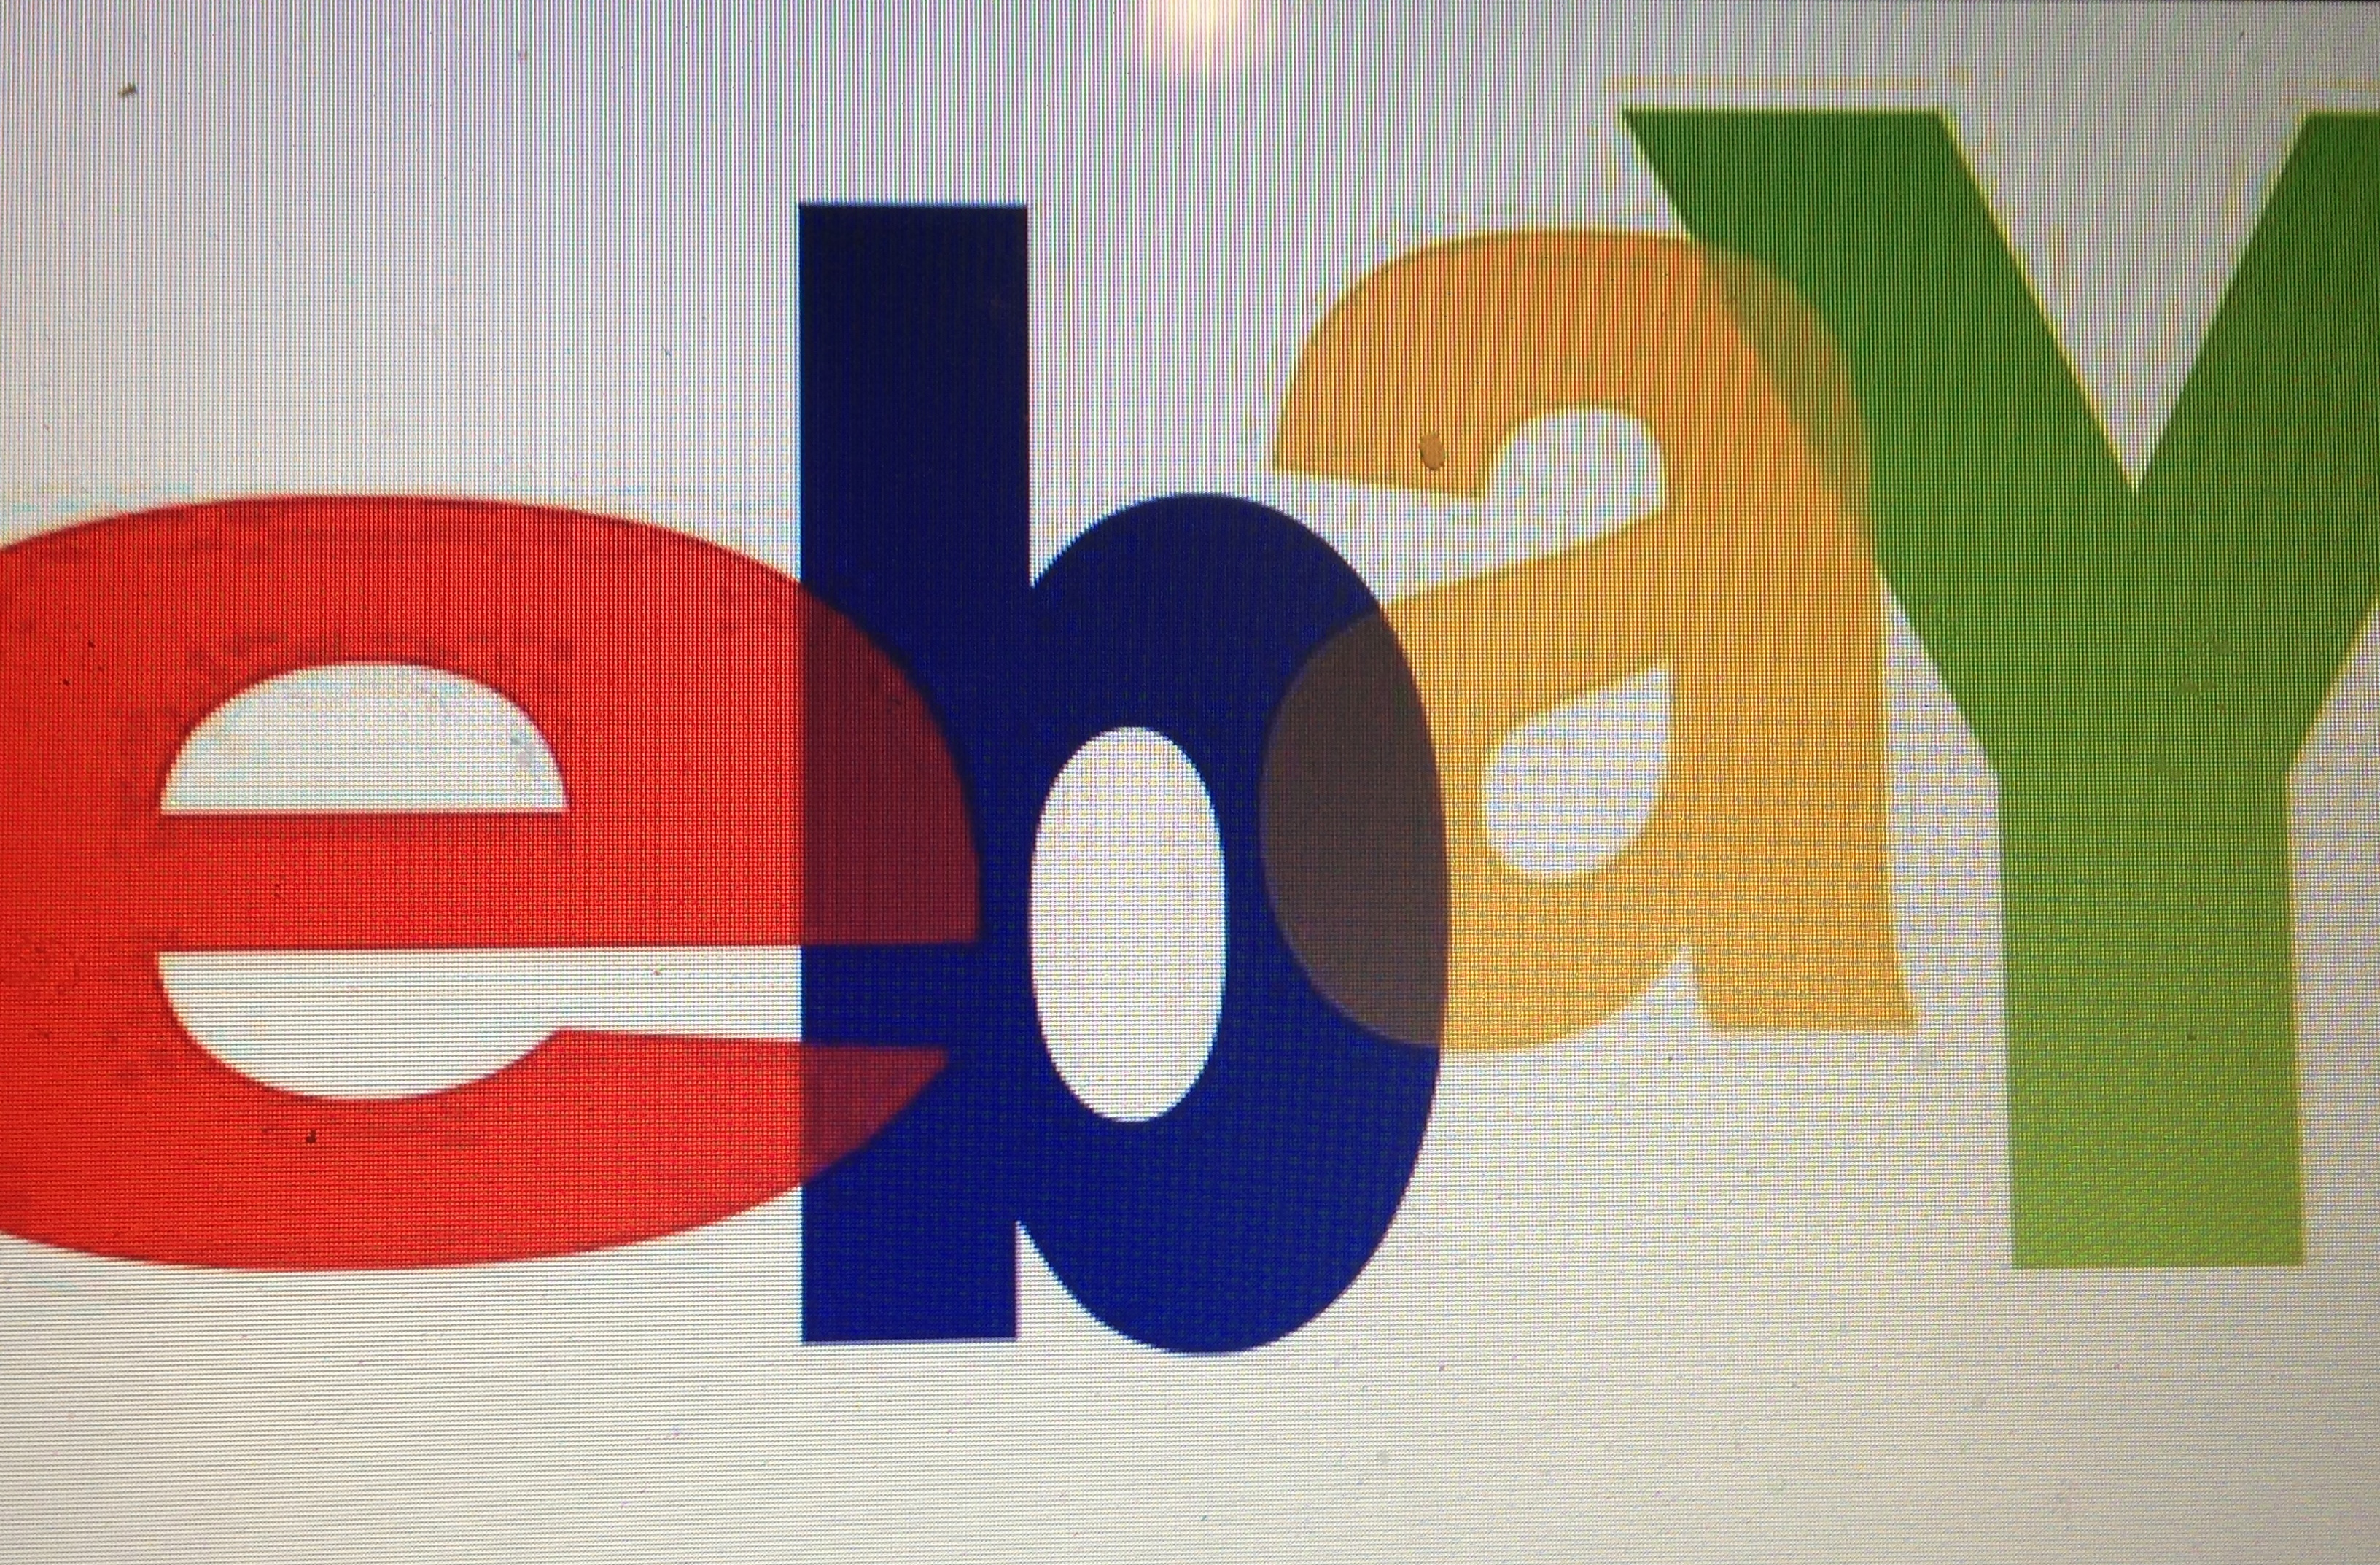 How to Sell an Item on EBAY Using the Advanced Tool (Auction style)